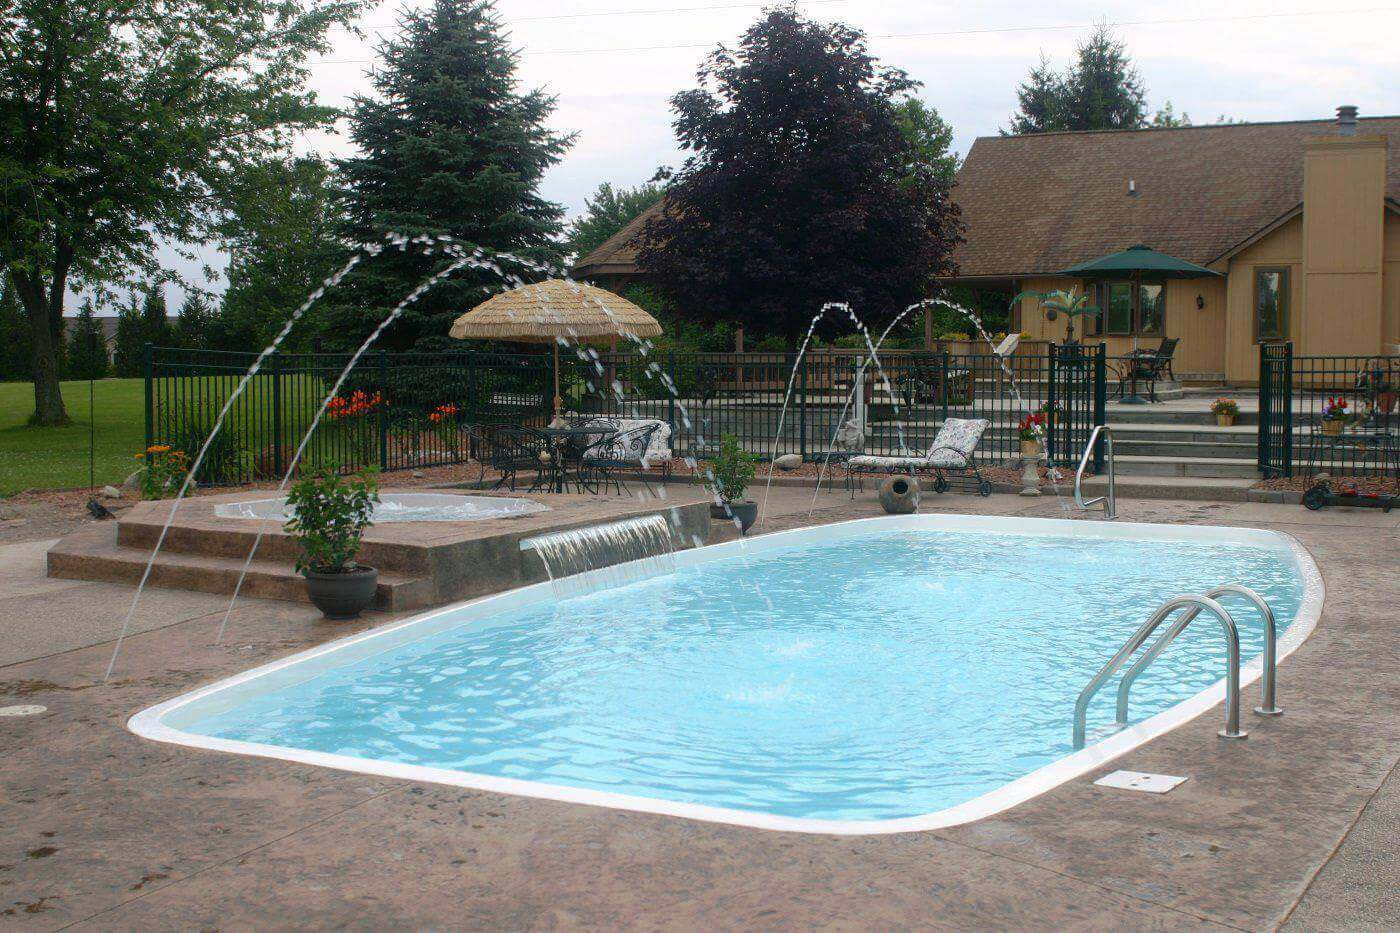 Best ideas about DIY Pool Kits . Save or Pin Diy Inground Pool Kits Fiberglass DIY Projects Now.